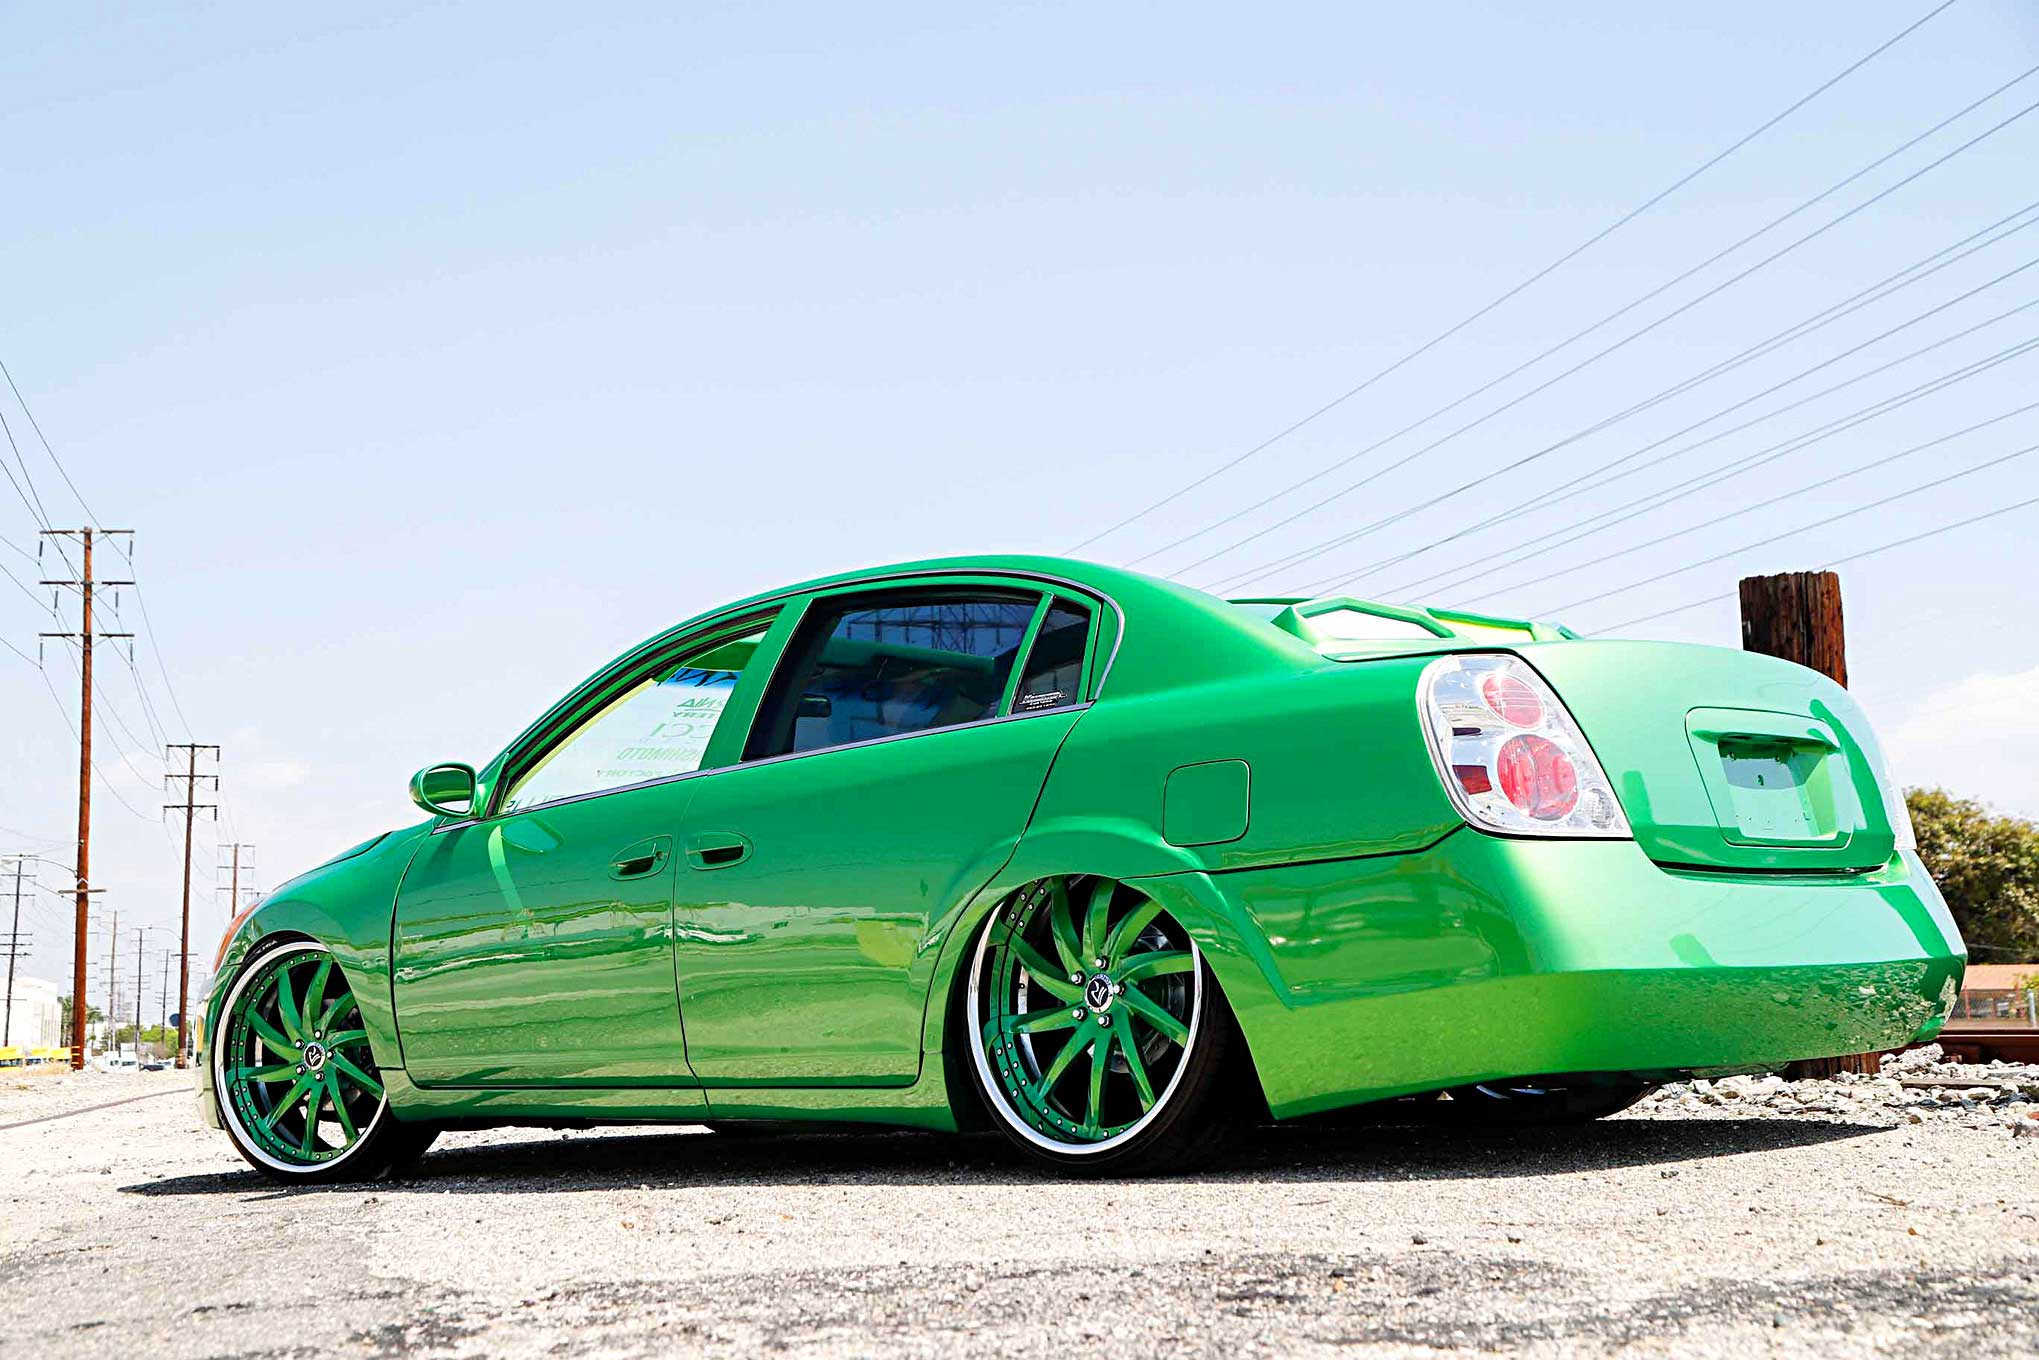 2005 nissan altima a reminder of dadNissan Altima Lowrider #4